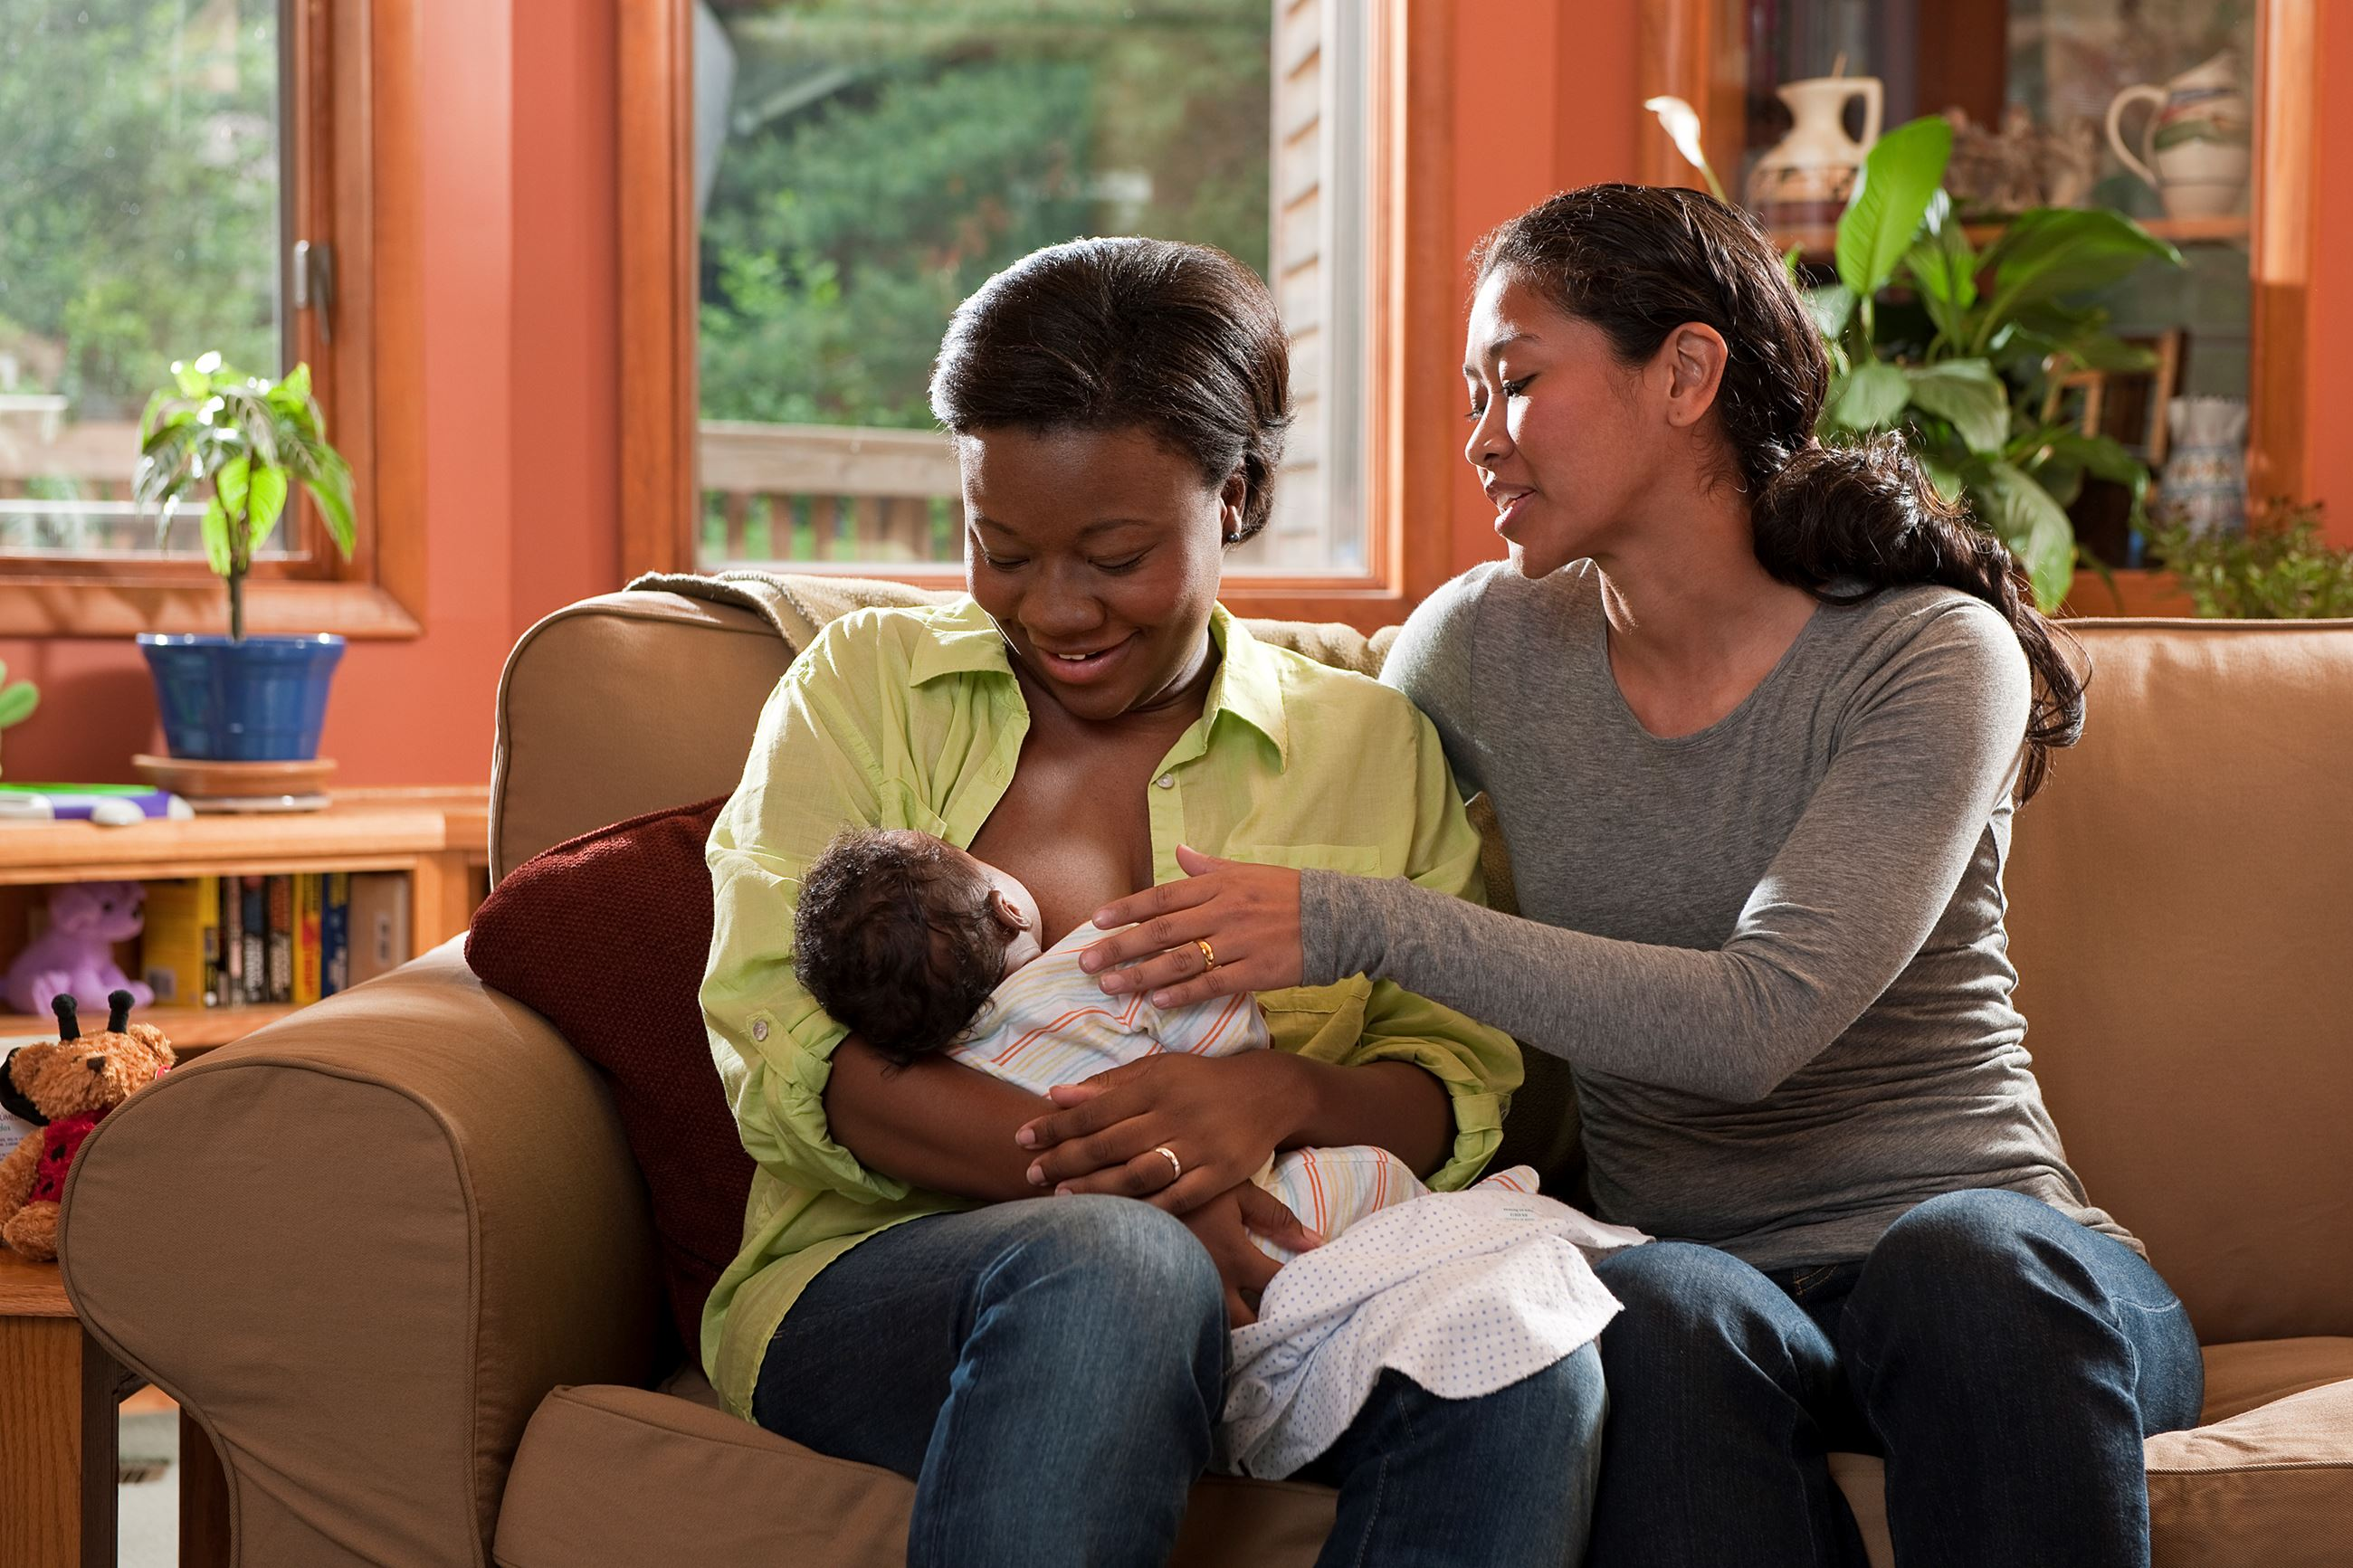 Women Sit Together on Counch While One Breastfeeds a Baby